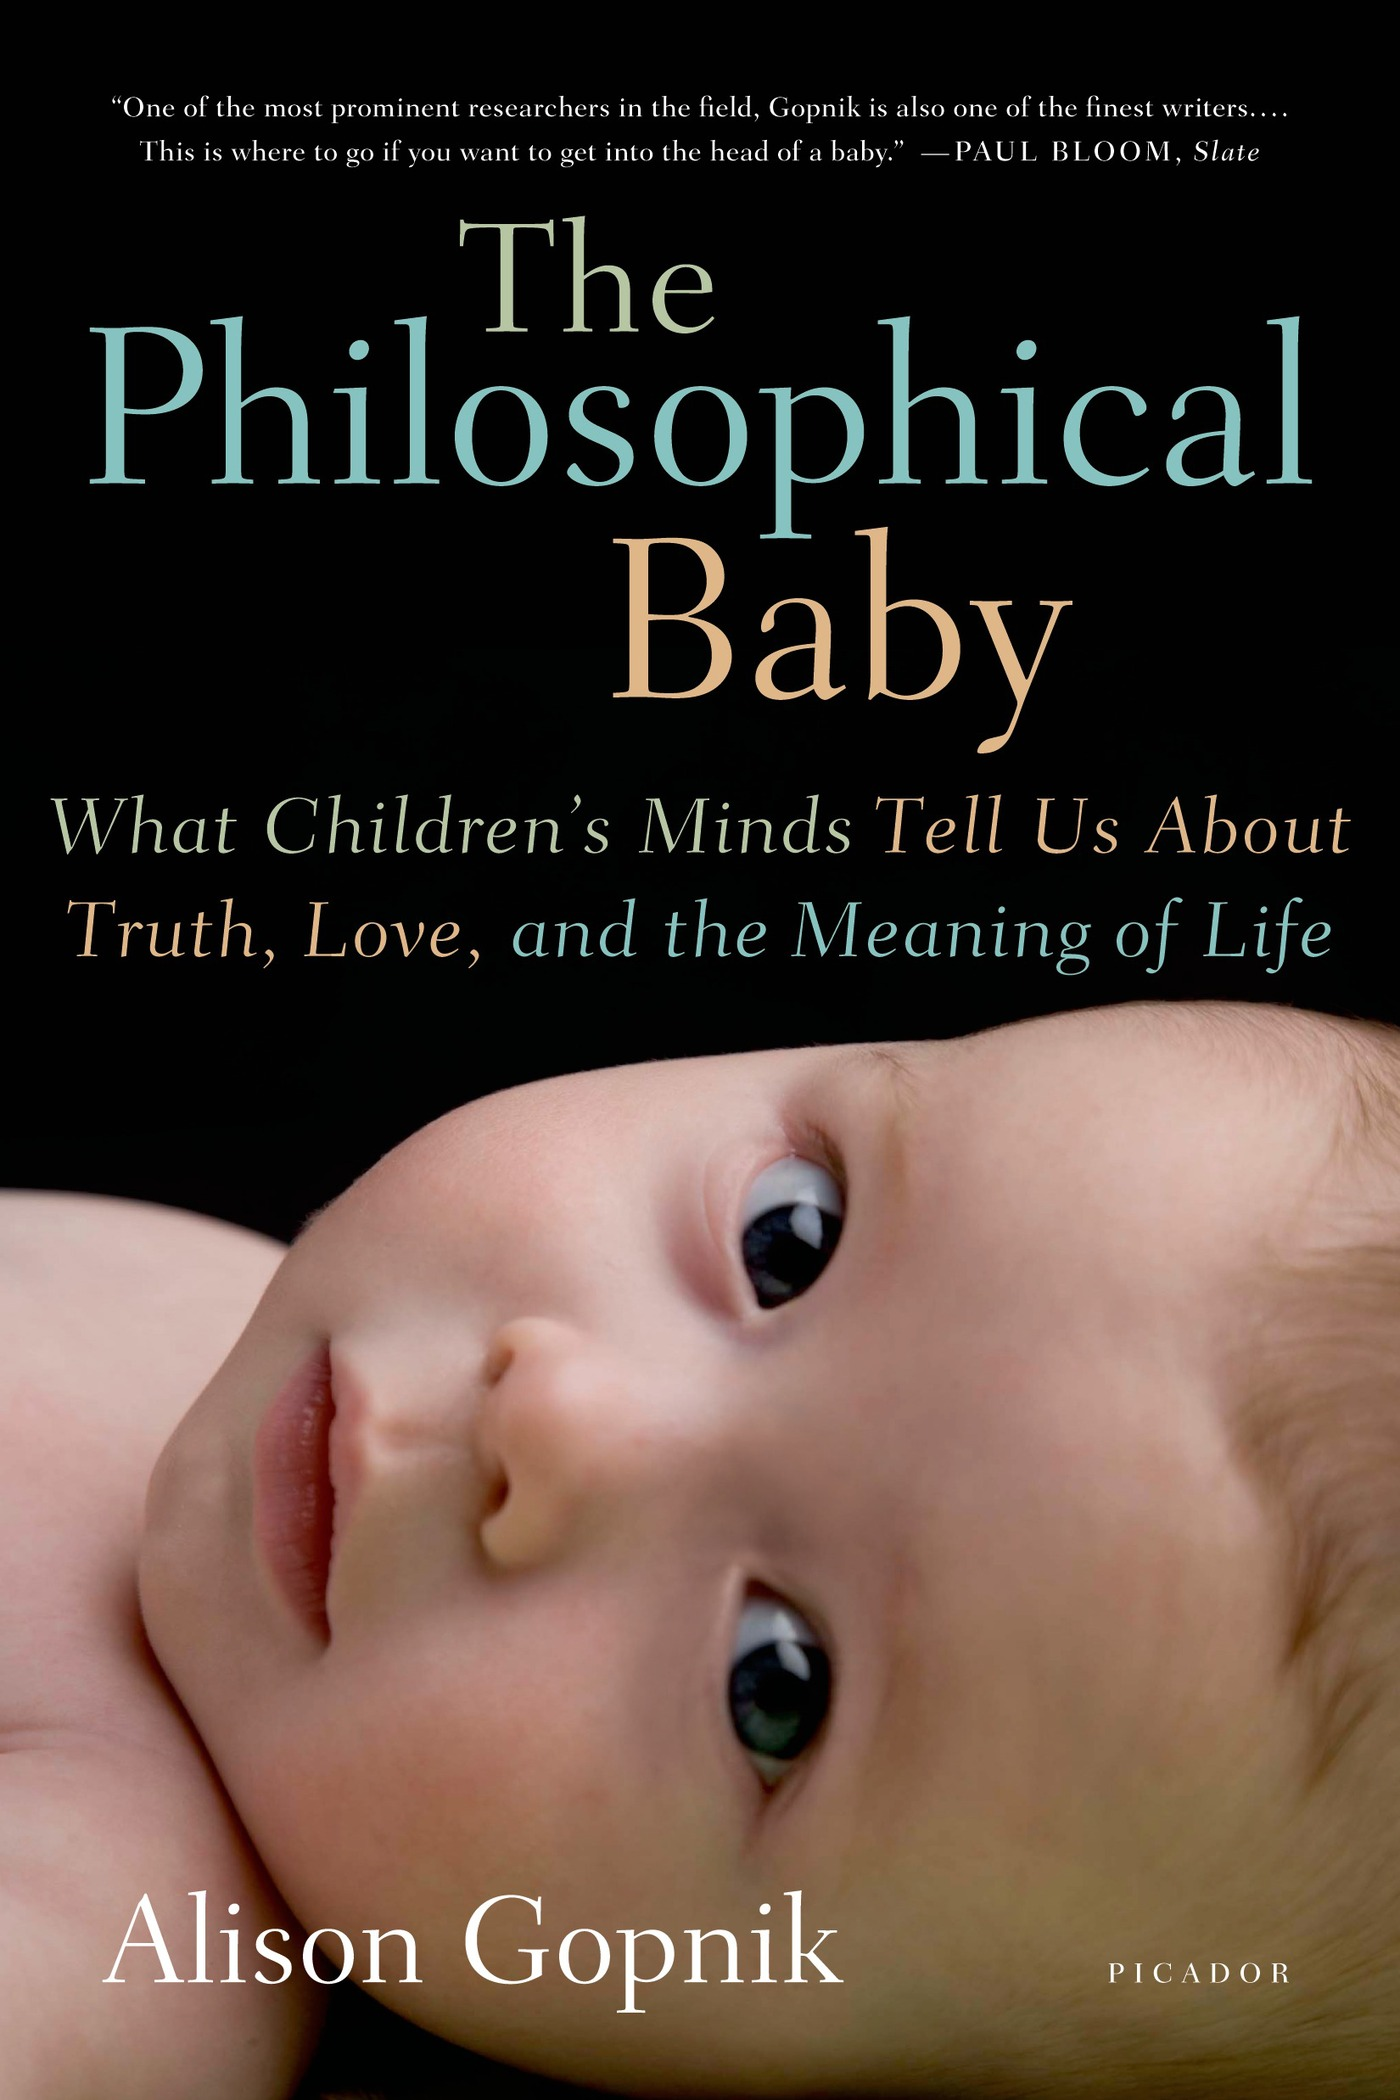 The Philosophical Baby By: Alison Gopnik